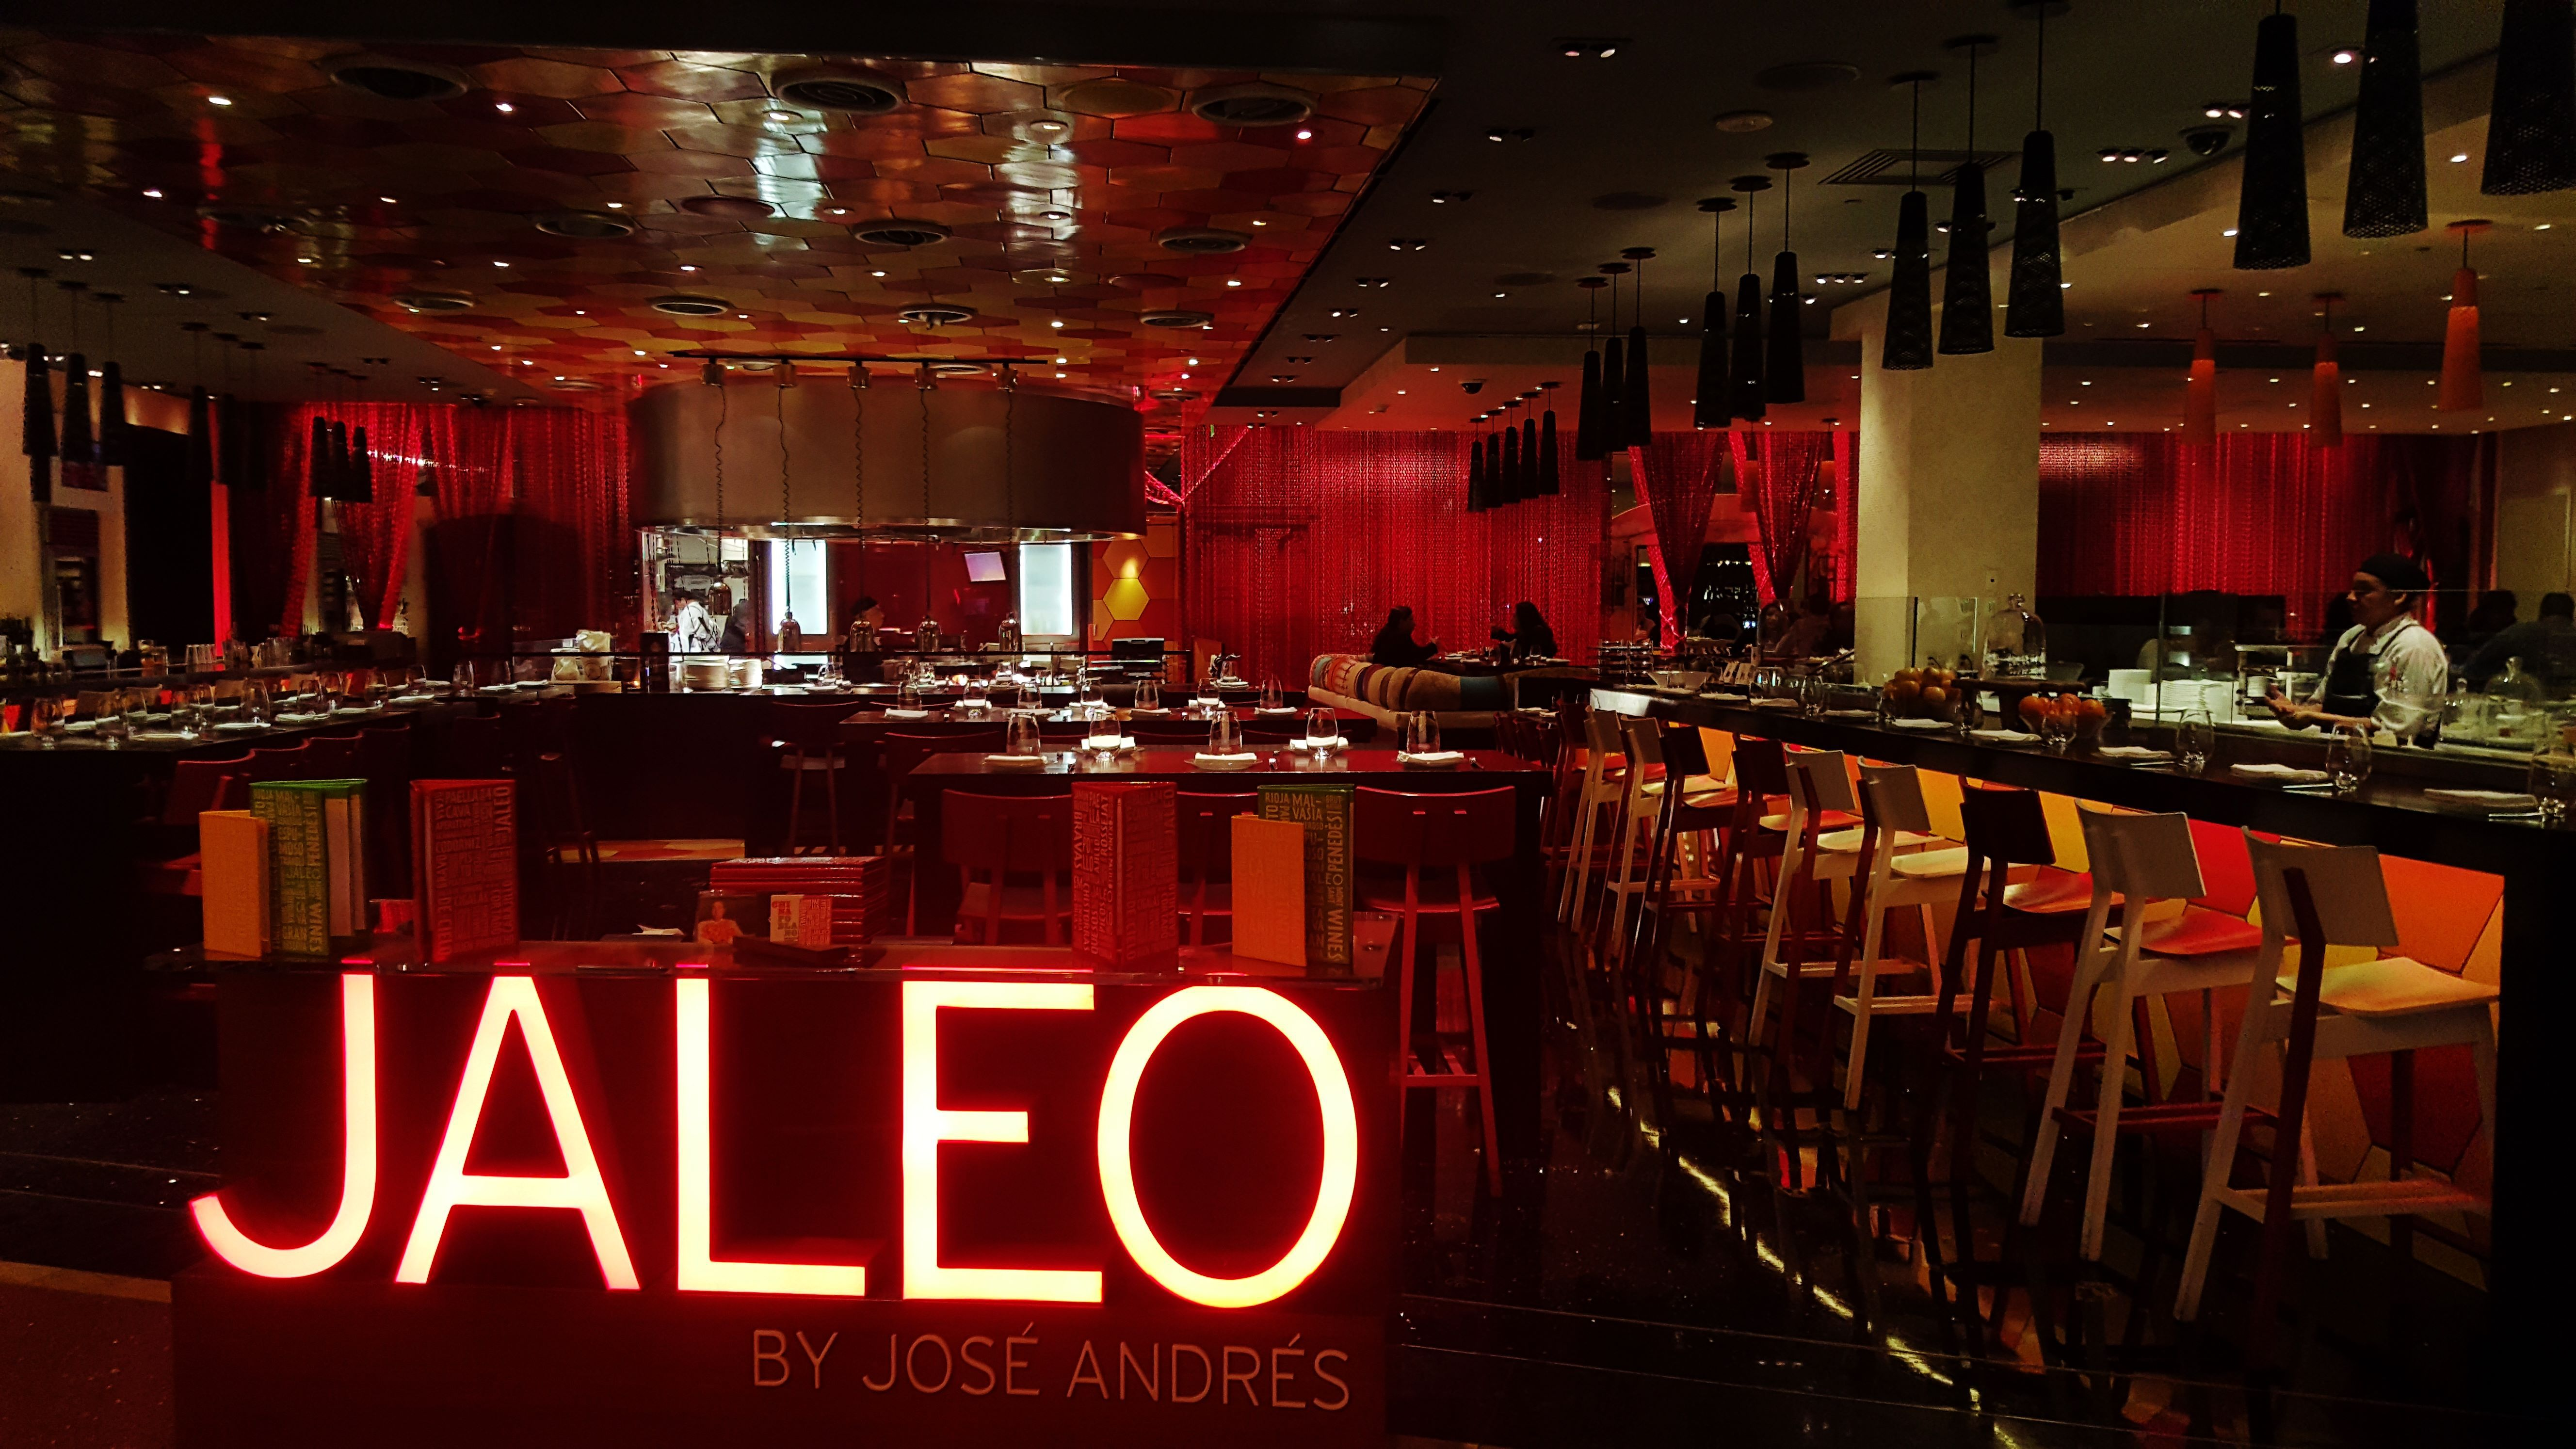 Jaleo by Jose Andres